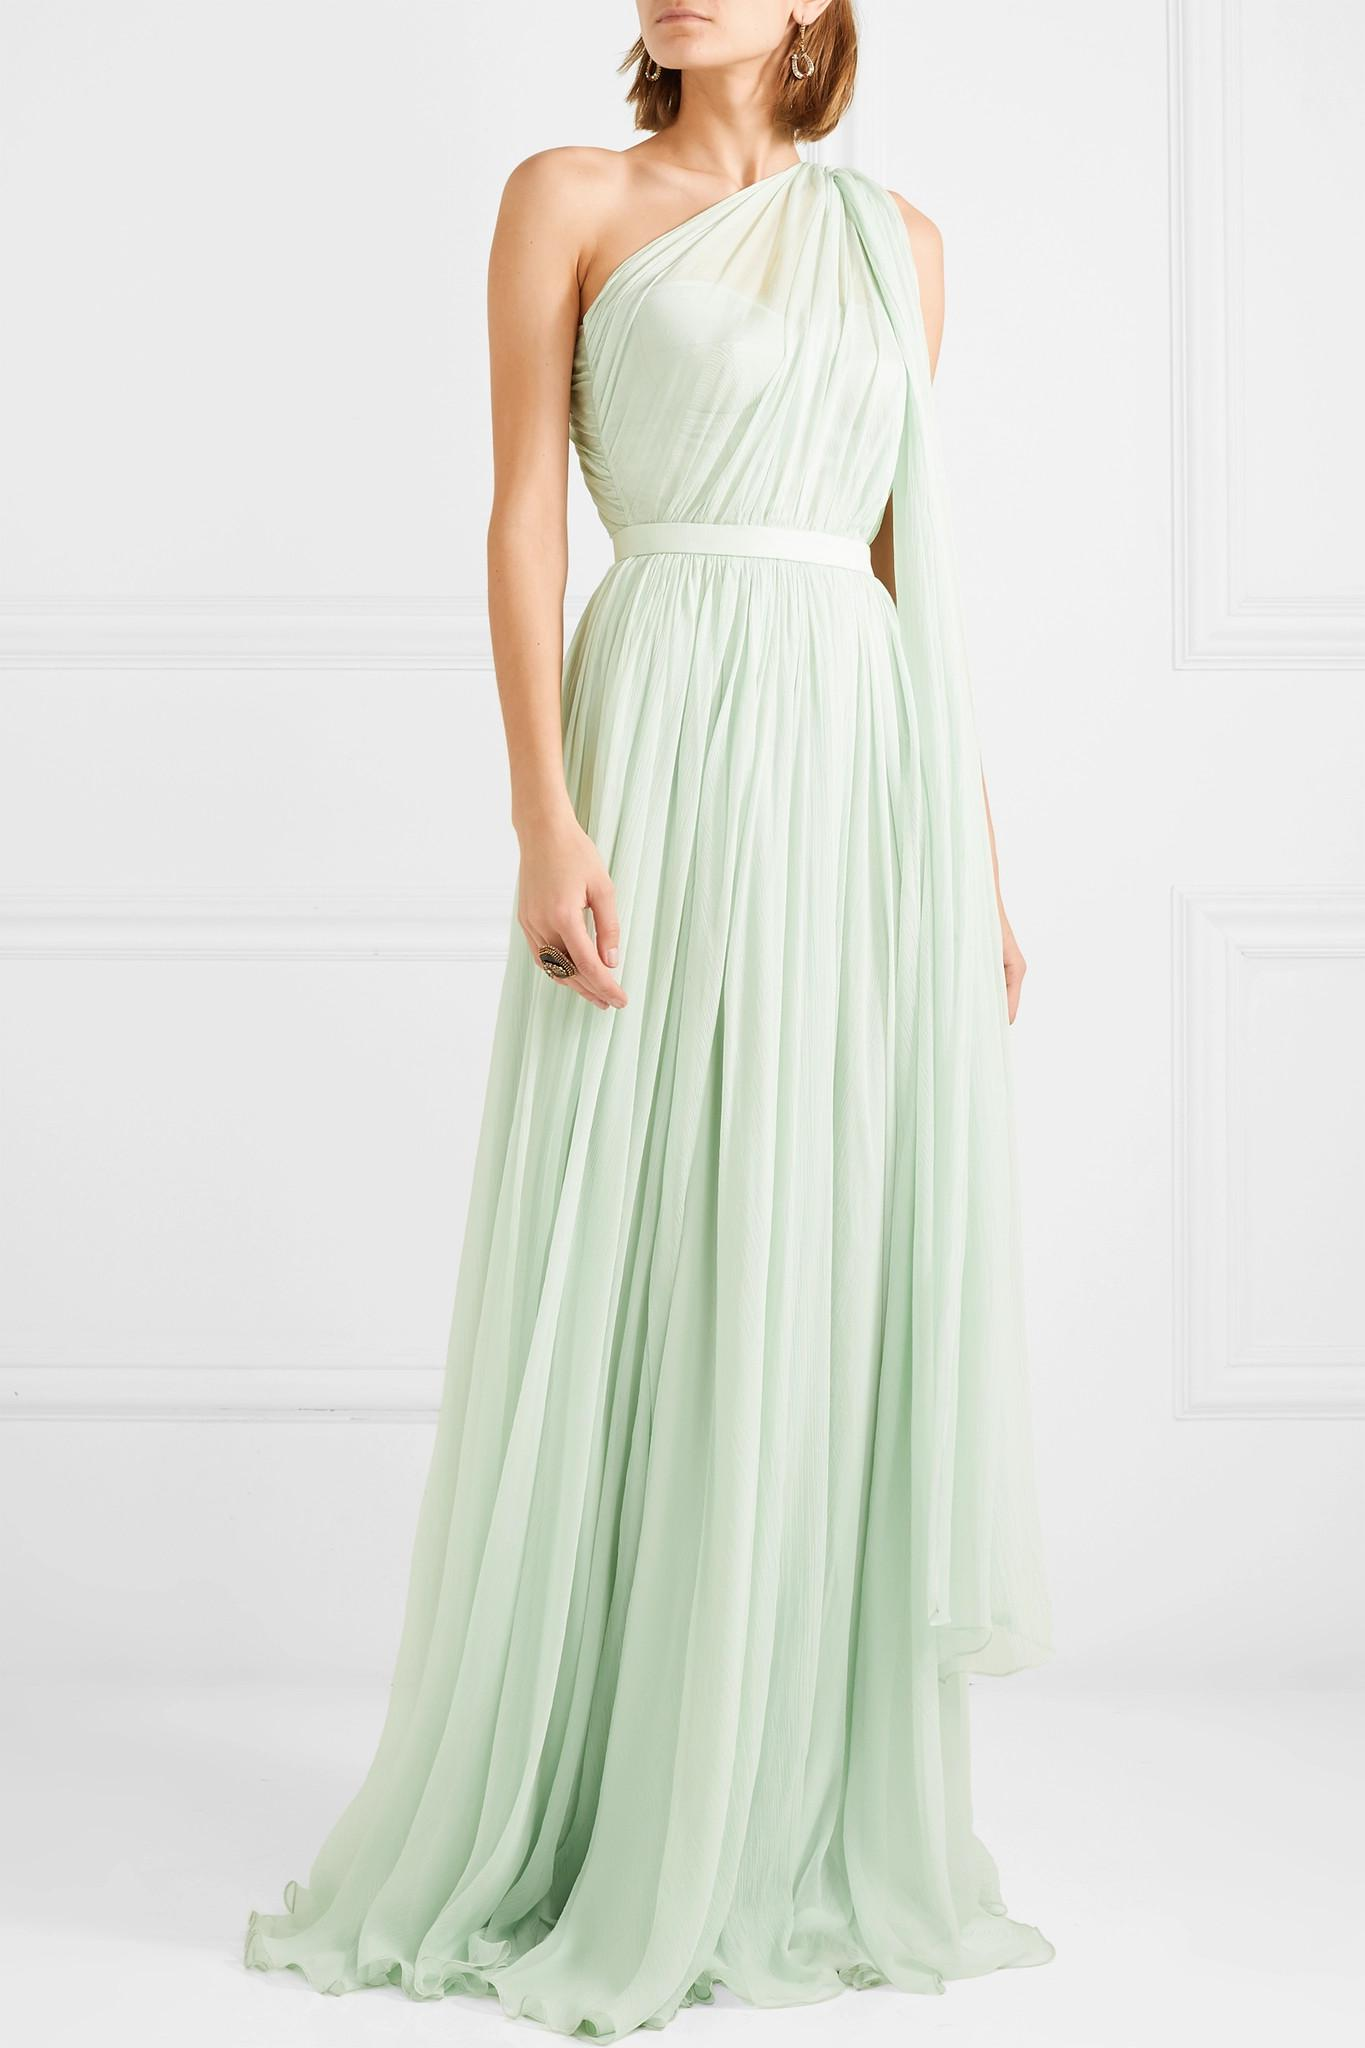 77439f3e8c95 Alexander McQueen One-shoulder Crinkled Silk-chiffon And Satin Gown ...